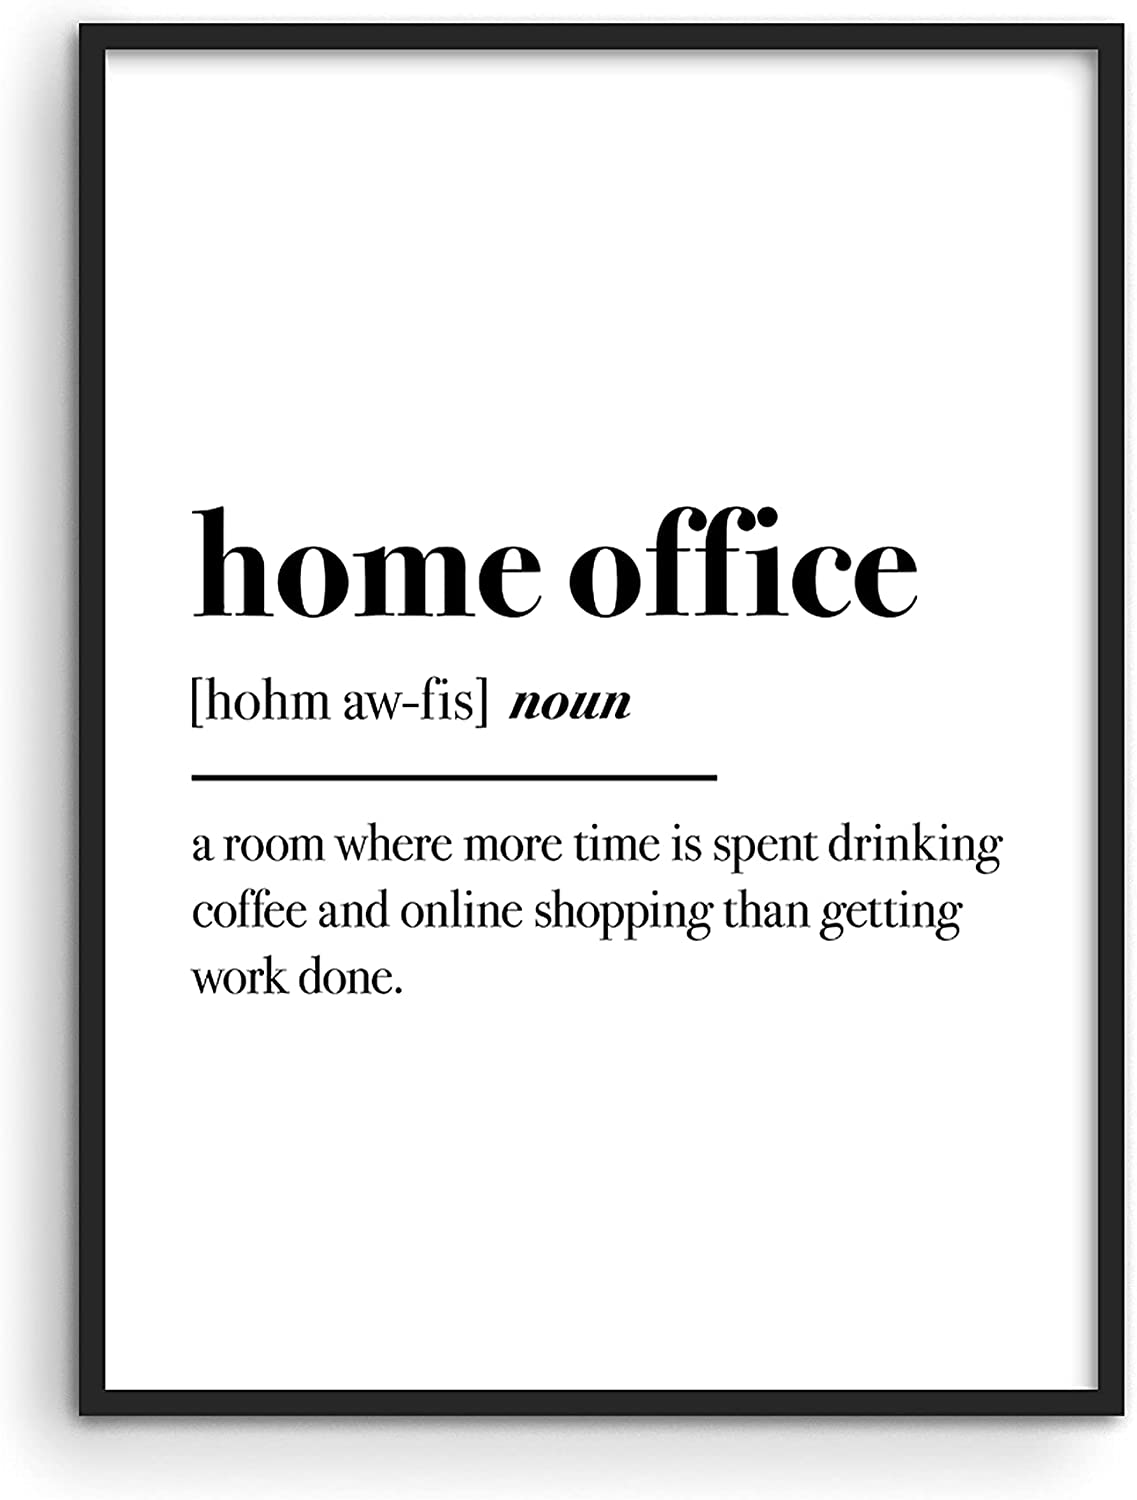 Haus and Hues Funny Quotes for Home Office Decor - Funny Home Decor & Office Wall Decor for Women Funny Work from Home Gifts Funny Work Gifts Funny Wall Decor for Home Office Decor Wall UNFRAMED 12x16